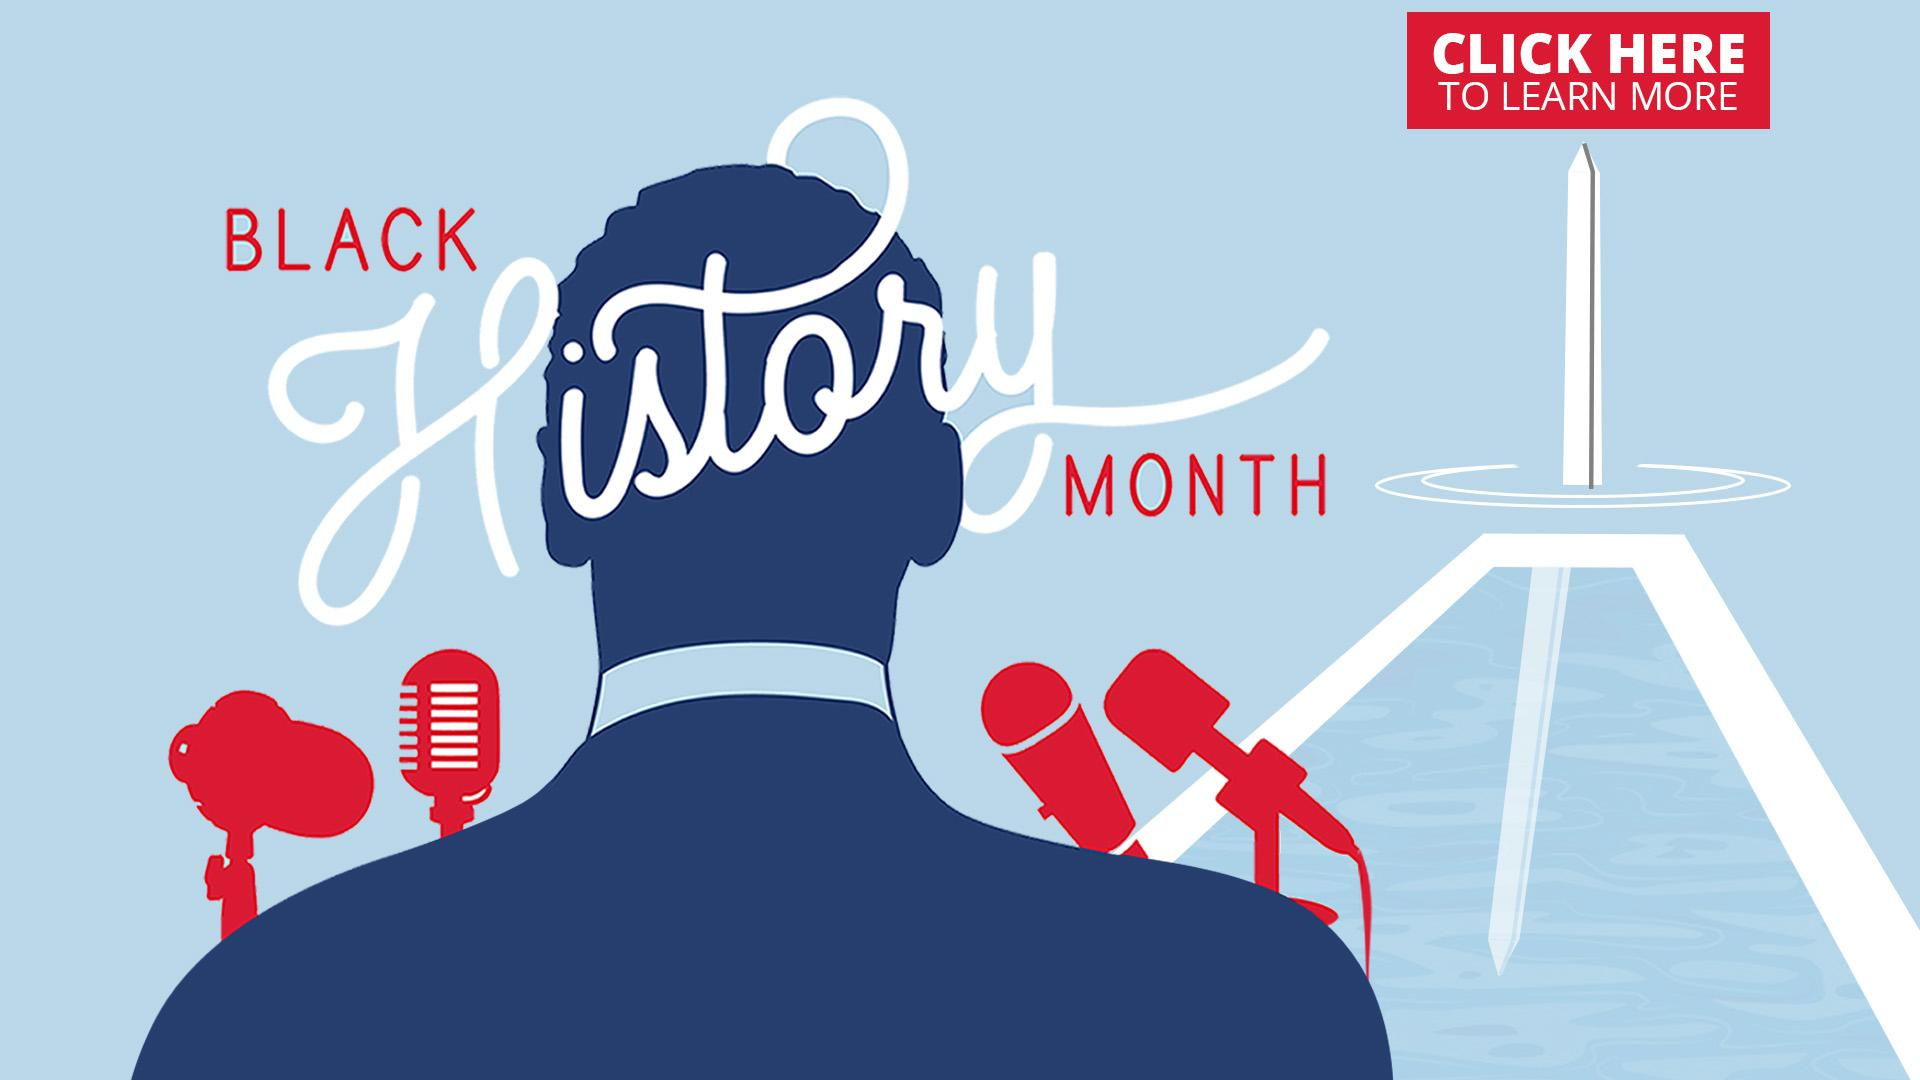 Black History Month. Click here to learn more.